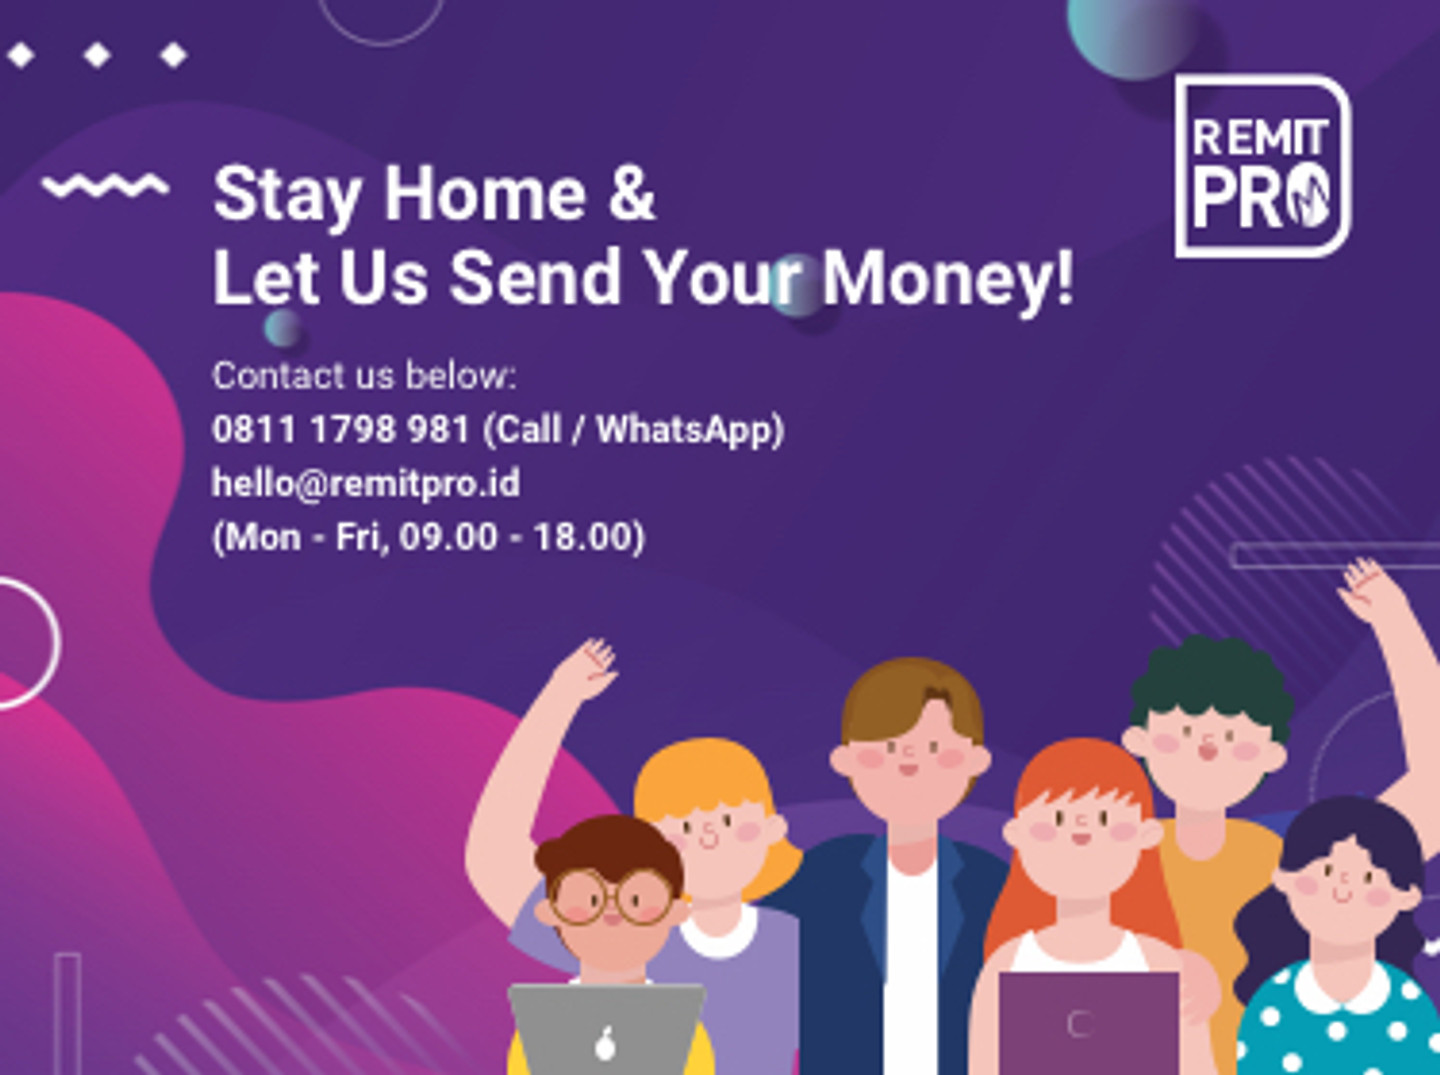 Stay Home & Let us Send Your Money